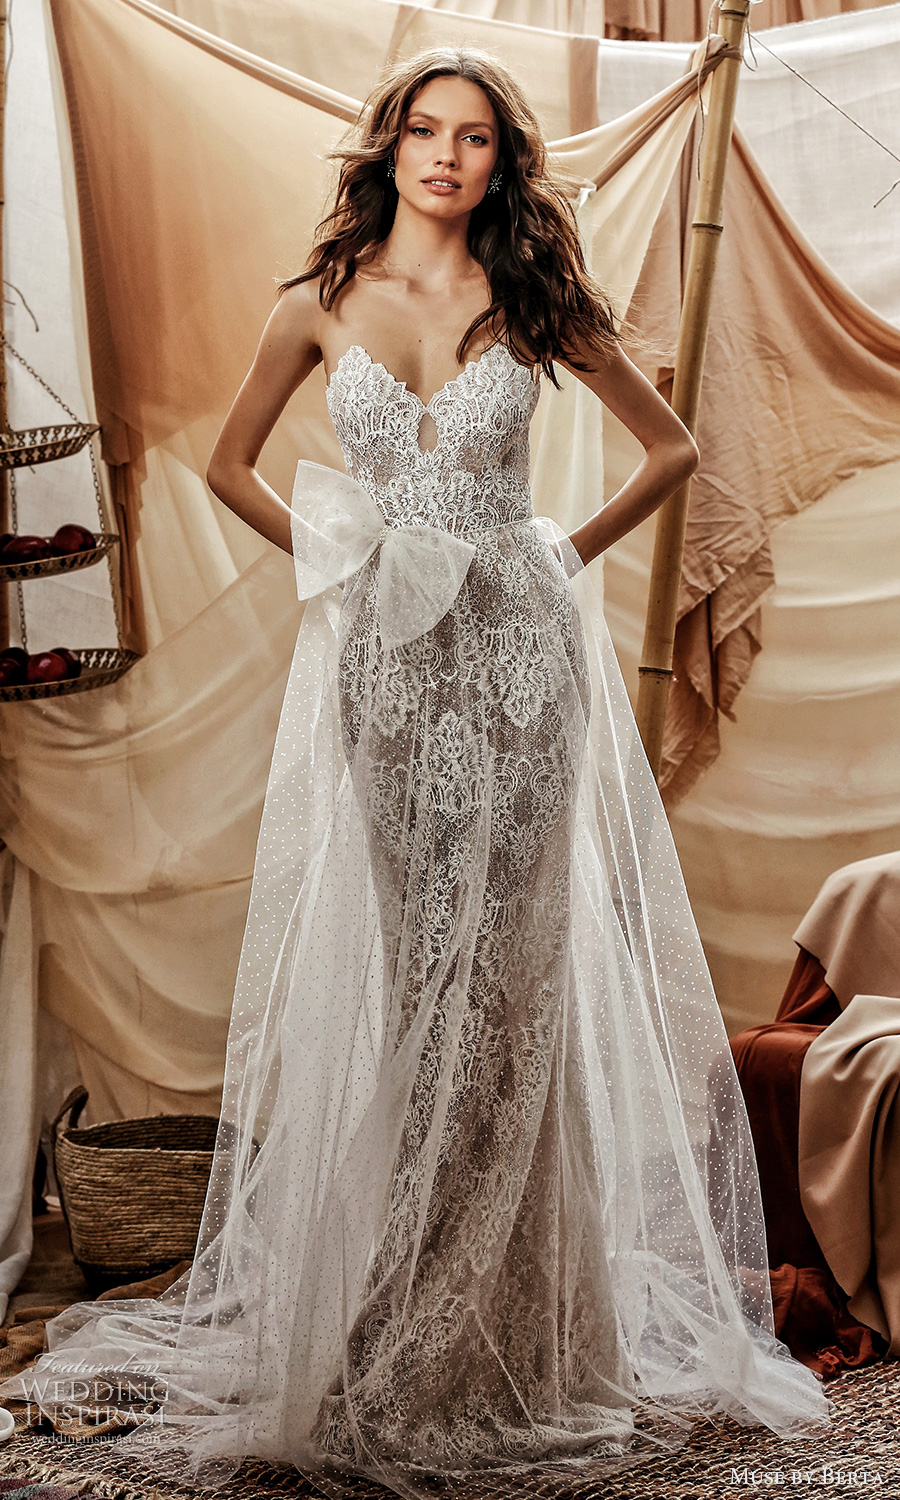 muse by berta spring 2021 bridal sleeveless illusion straps scallop sweetheart neckline fully embellished lace sheath wedding dress sheer a line overskirt chapel train (14) mv